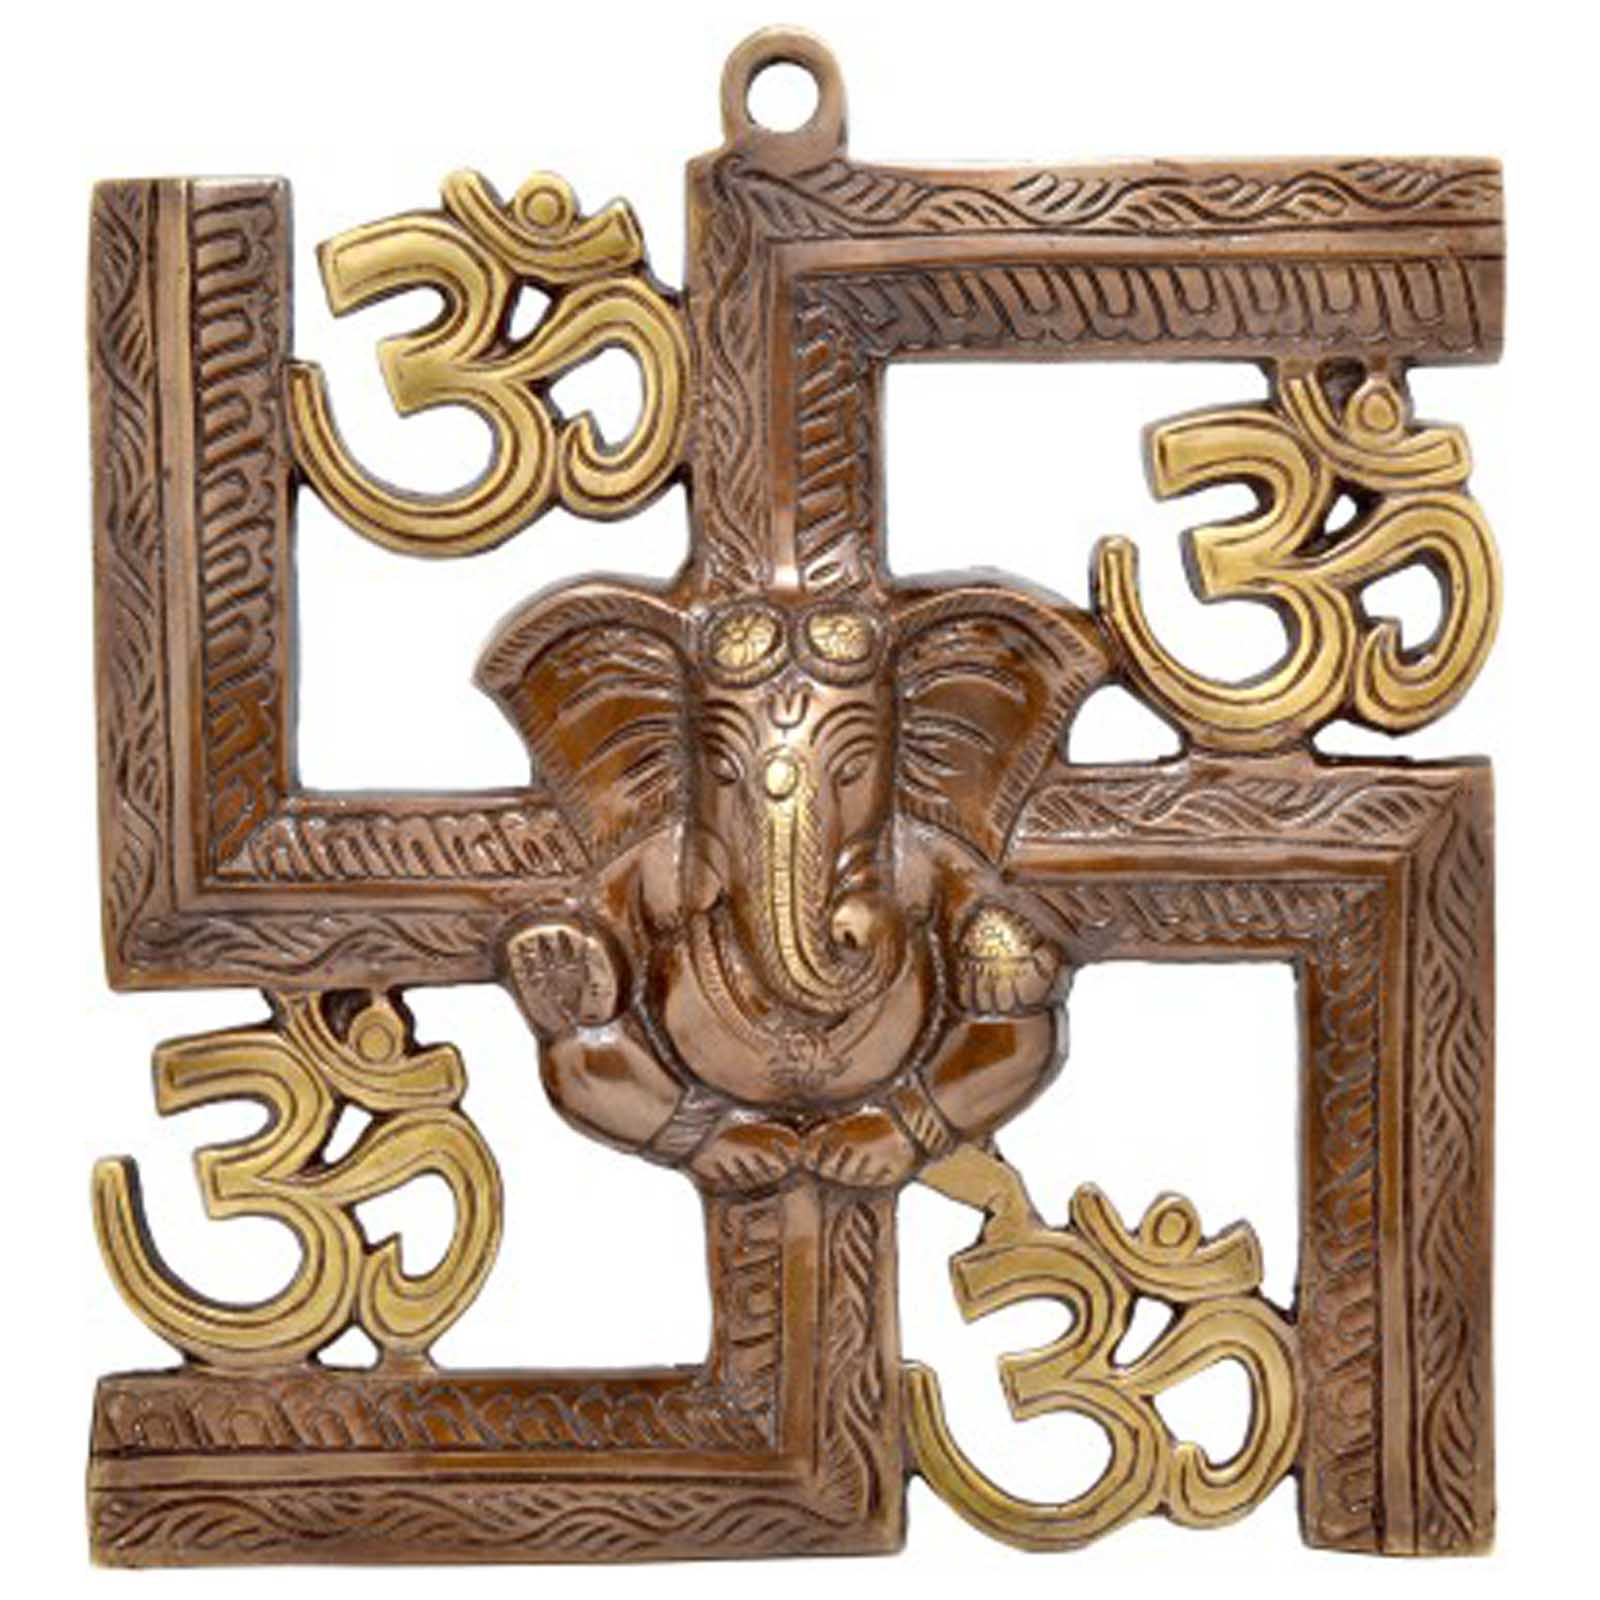 Ganesha And Swastik Brass Wall Hanging Buy Wall Decor Online